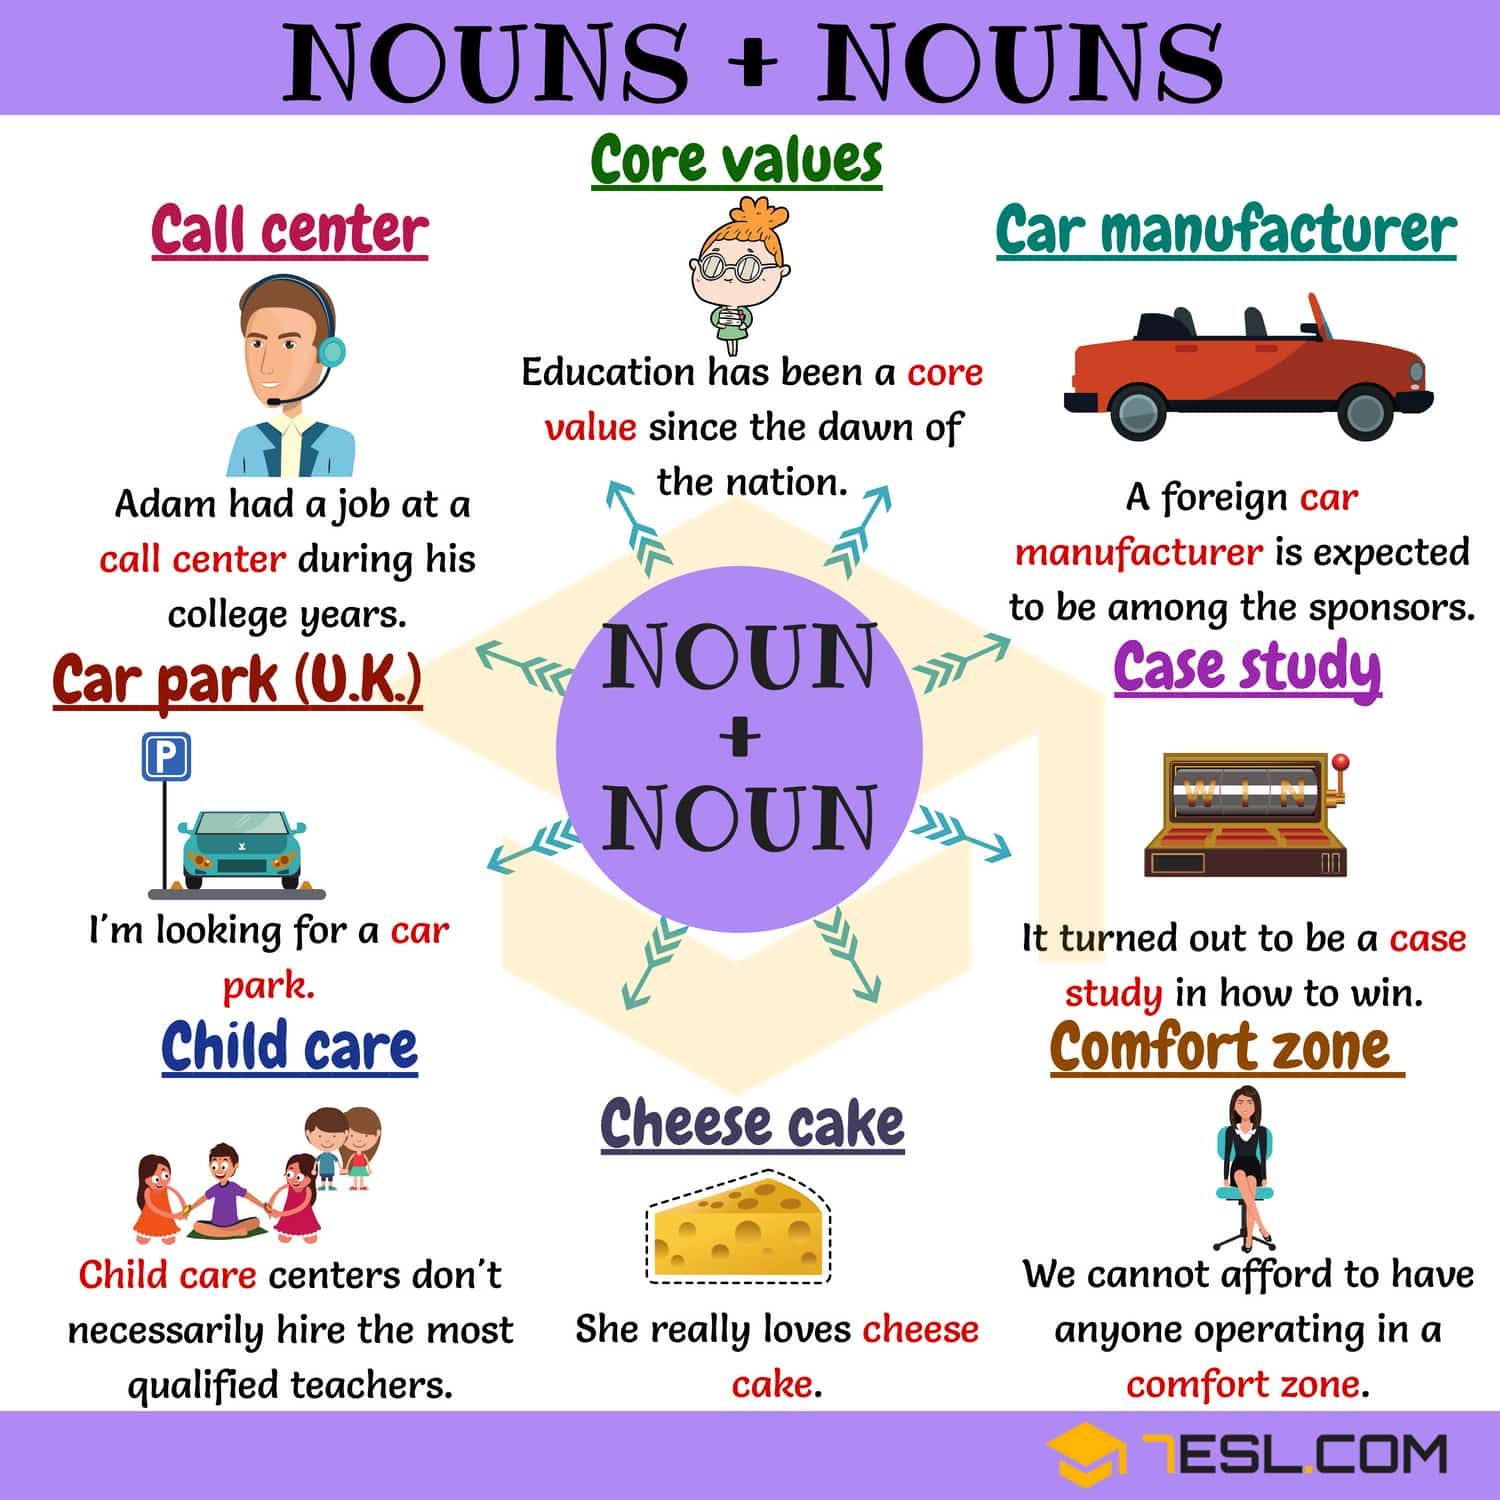 77 Common Noun and Noun Collocations in English (A-C) 3